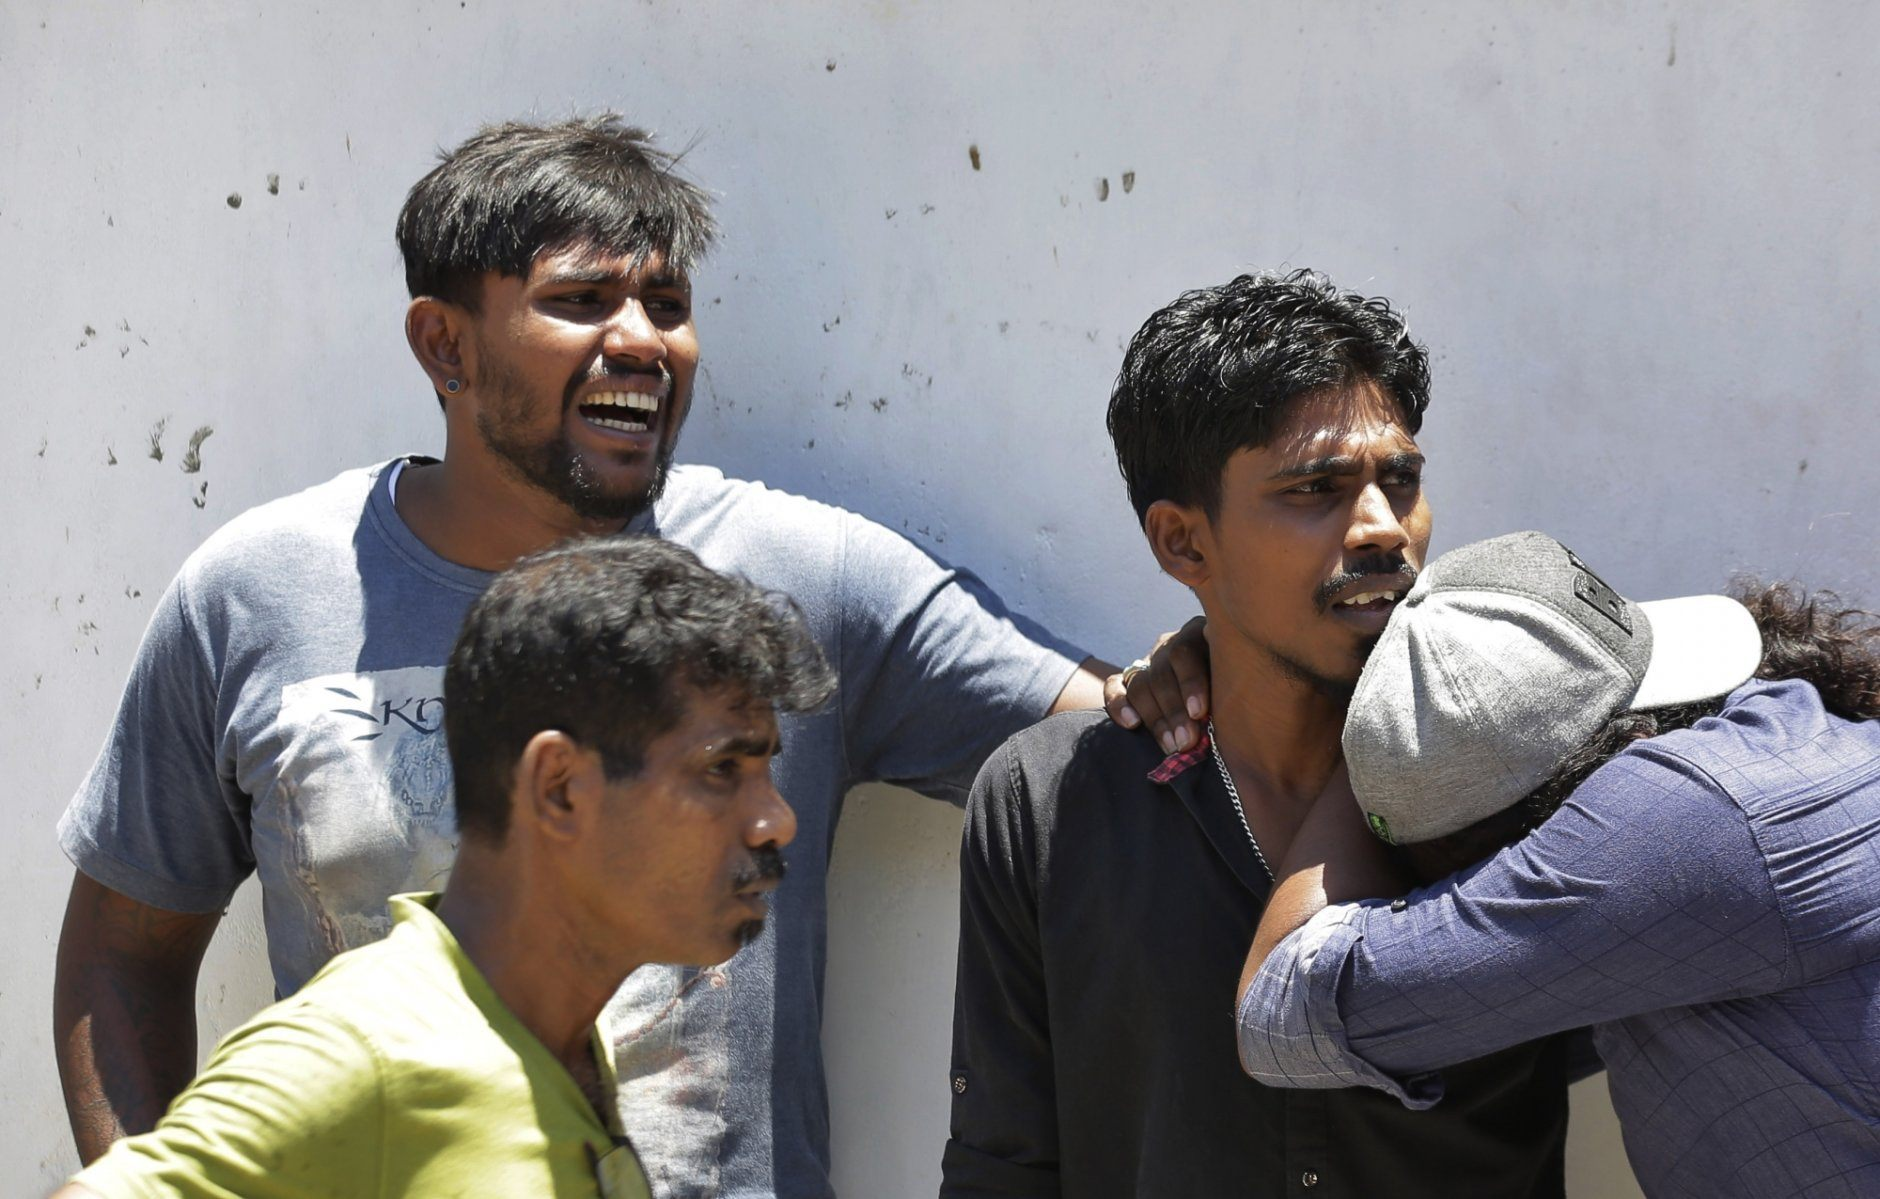 Relatives of a blast victim weep outside a police morgue in Colombo, Sri Lanka, Sunday, April 21, 2019. More than two hundred people were killed and hundreds more injured in eight blasts that rocked churches and hotels in and just outside Sri Lanka's capital on Easter Sunday. (AP Photo/Eranga Jayawardena)